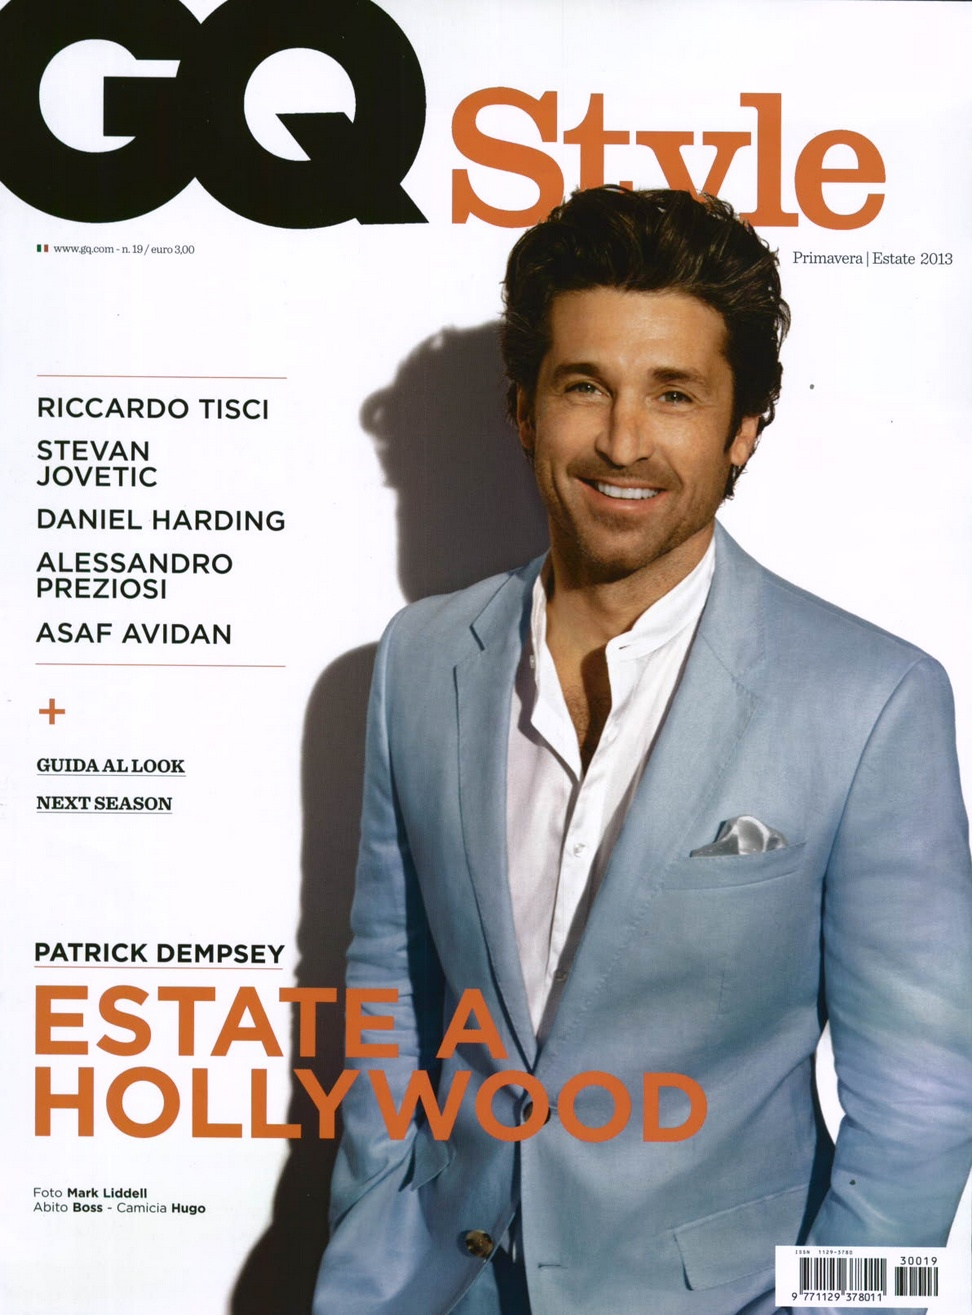 GQ_STYLE_01.03.13_COVER